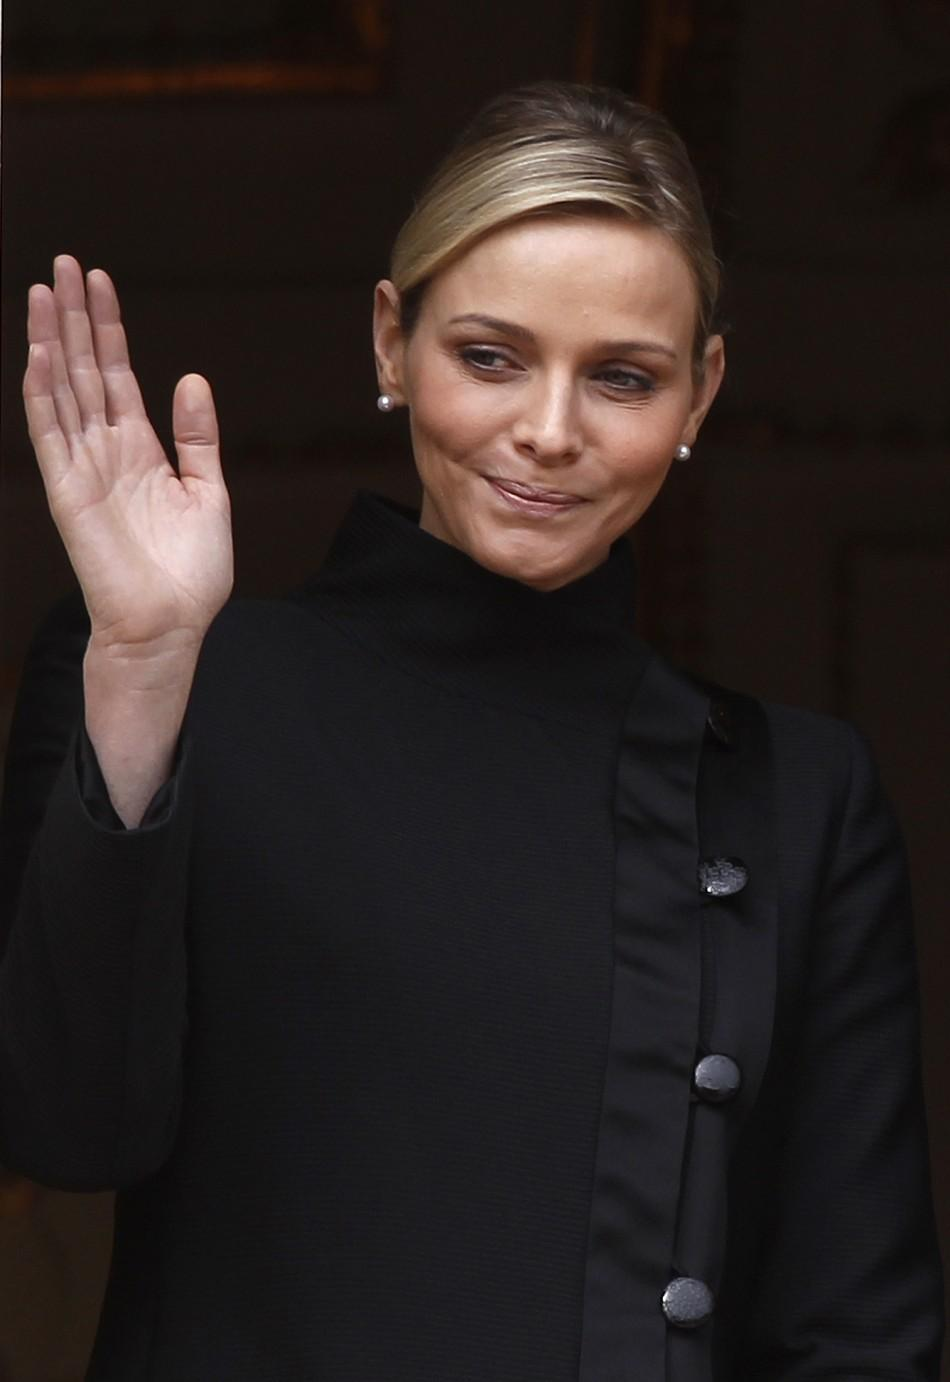 Charlene Wittstock's top 10 defining fashion moments.